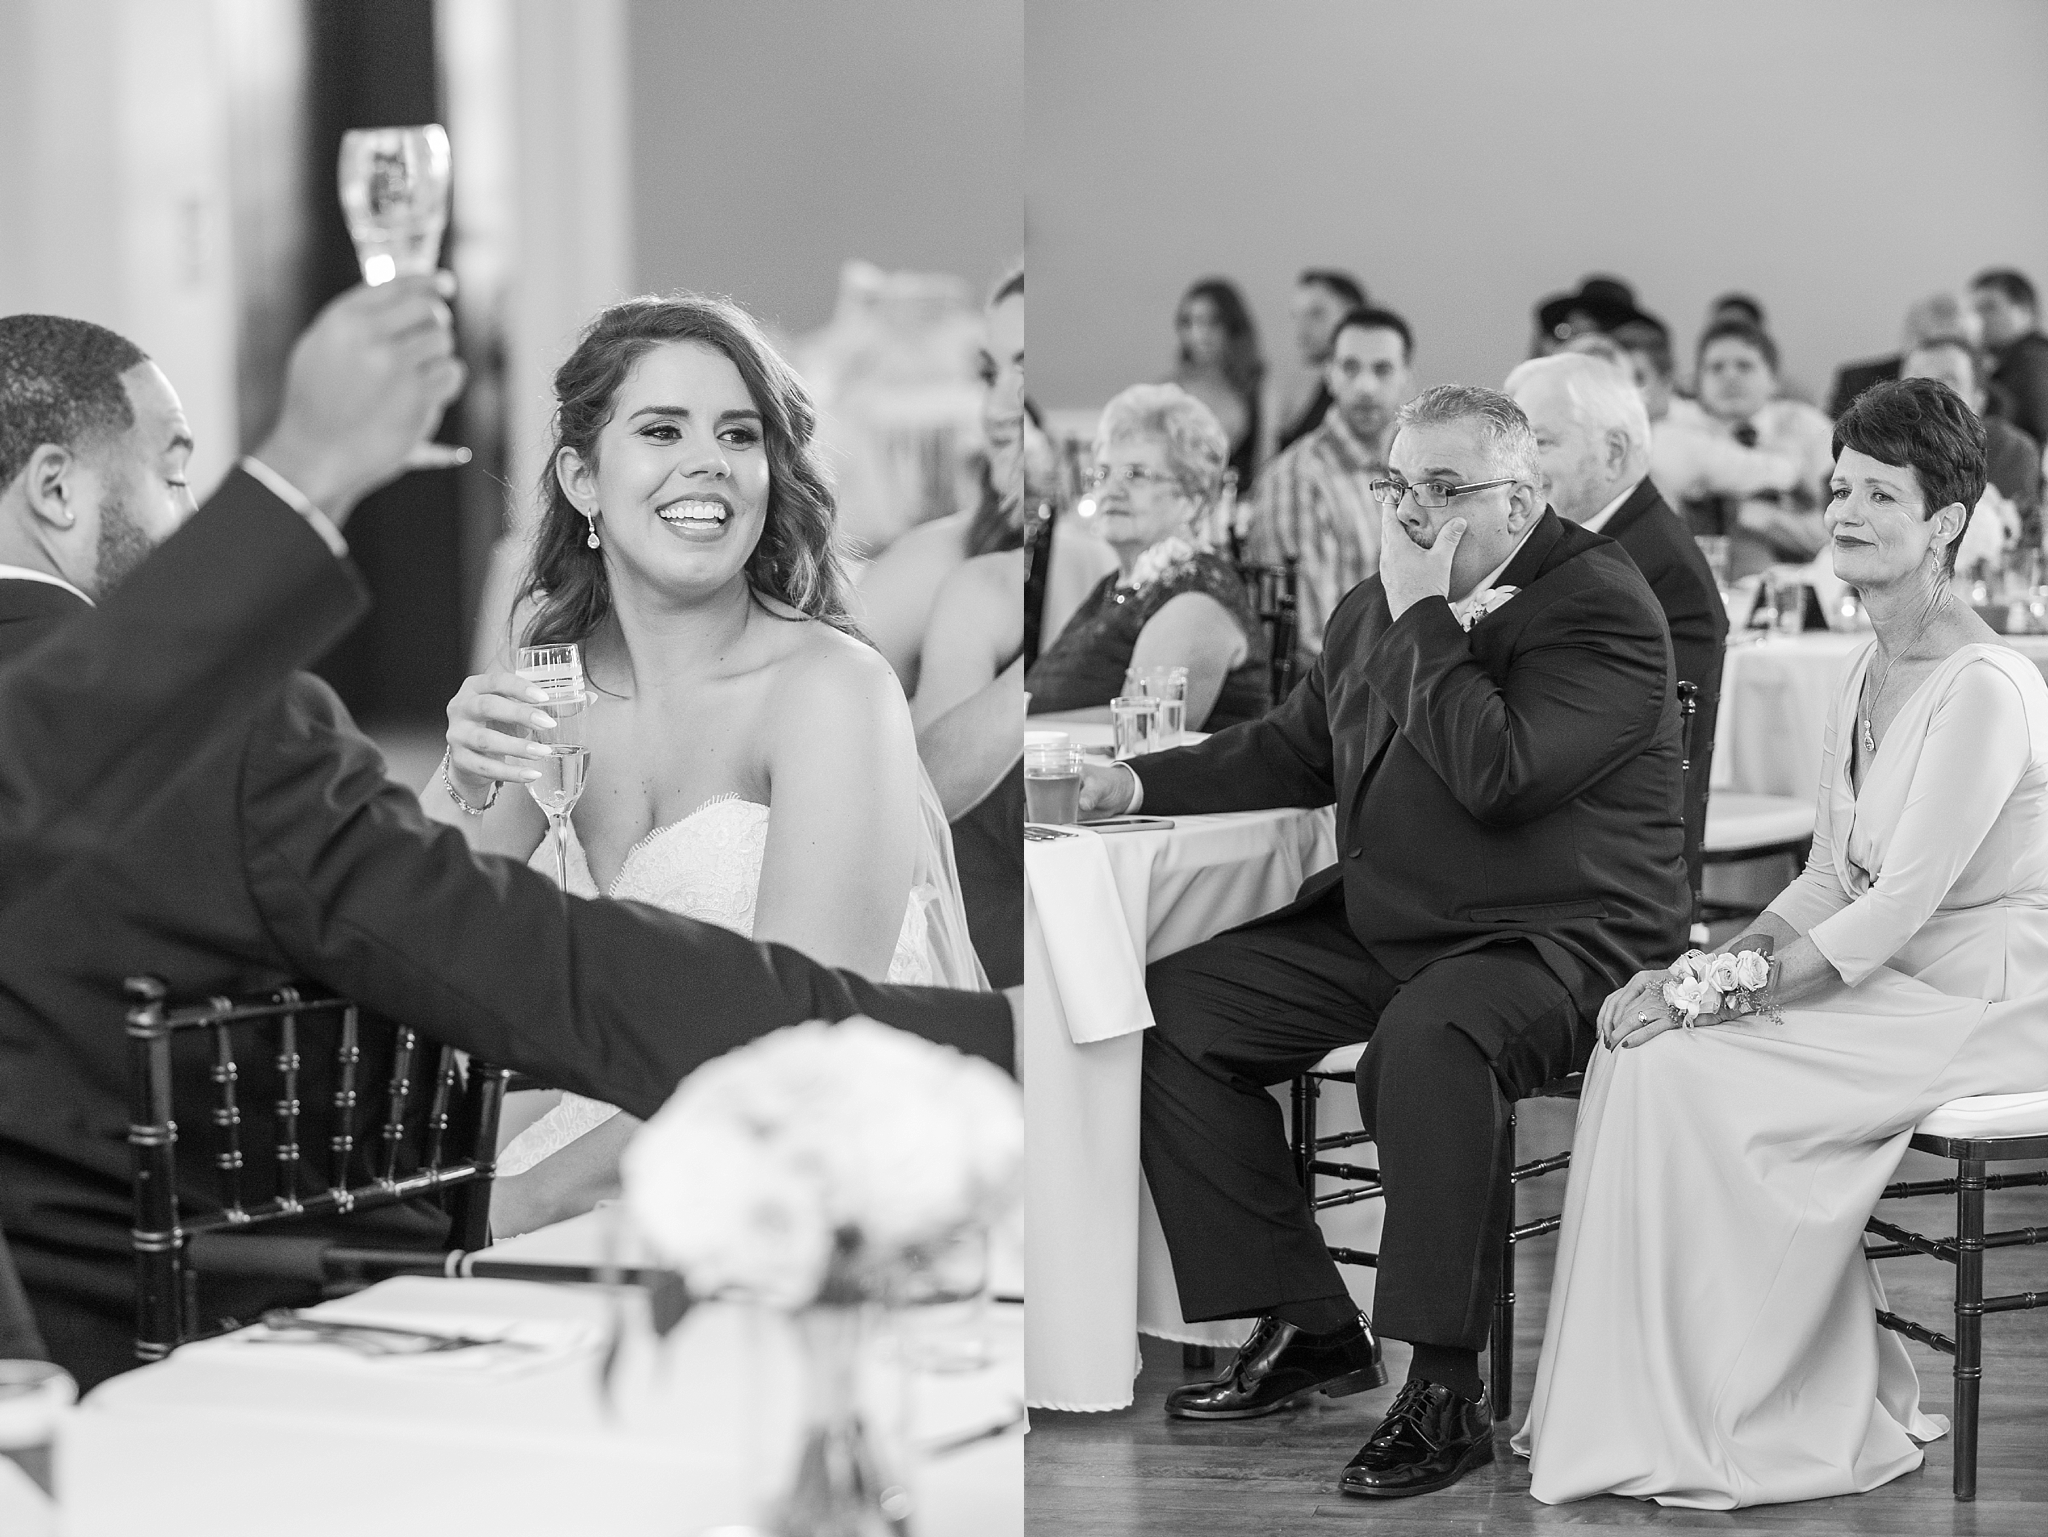 romantic-artful-candid-wedding-photos-in-detroit-lansing-ann-arbor-northern-michigan-and-chicago-by-courtney-carolyn-photography_0037.jpg